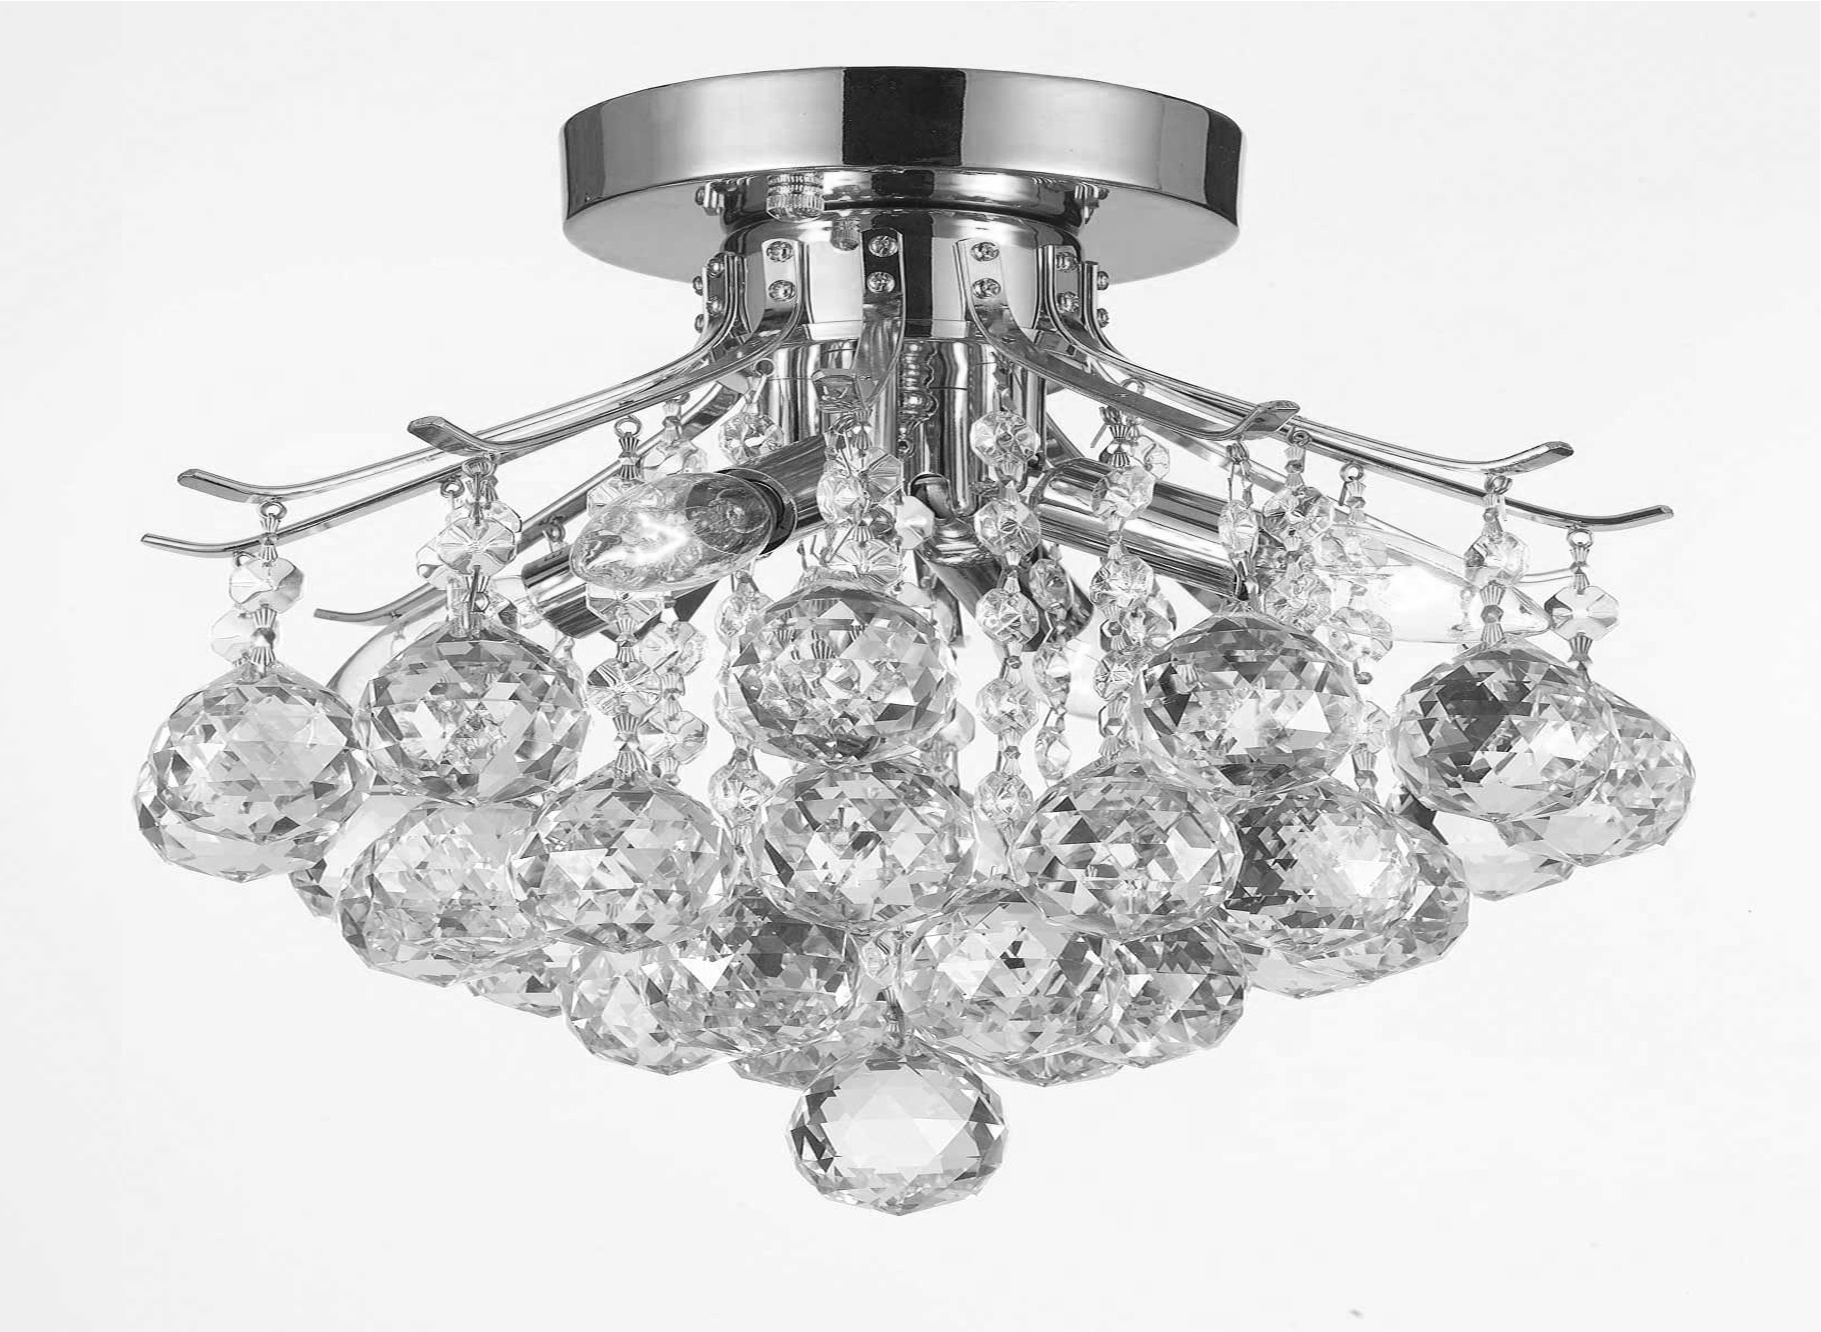 Wall Mount Crystal Chandeliers In Latest G7 Cs/1132/4 Gallery Empire Style Empire Crystal Chandelier (View 12 of 20)